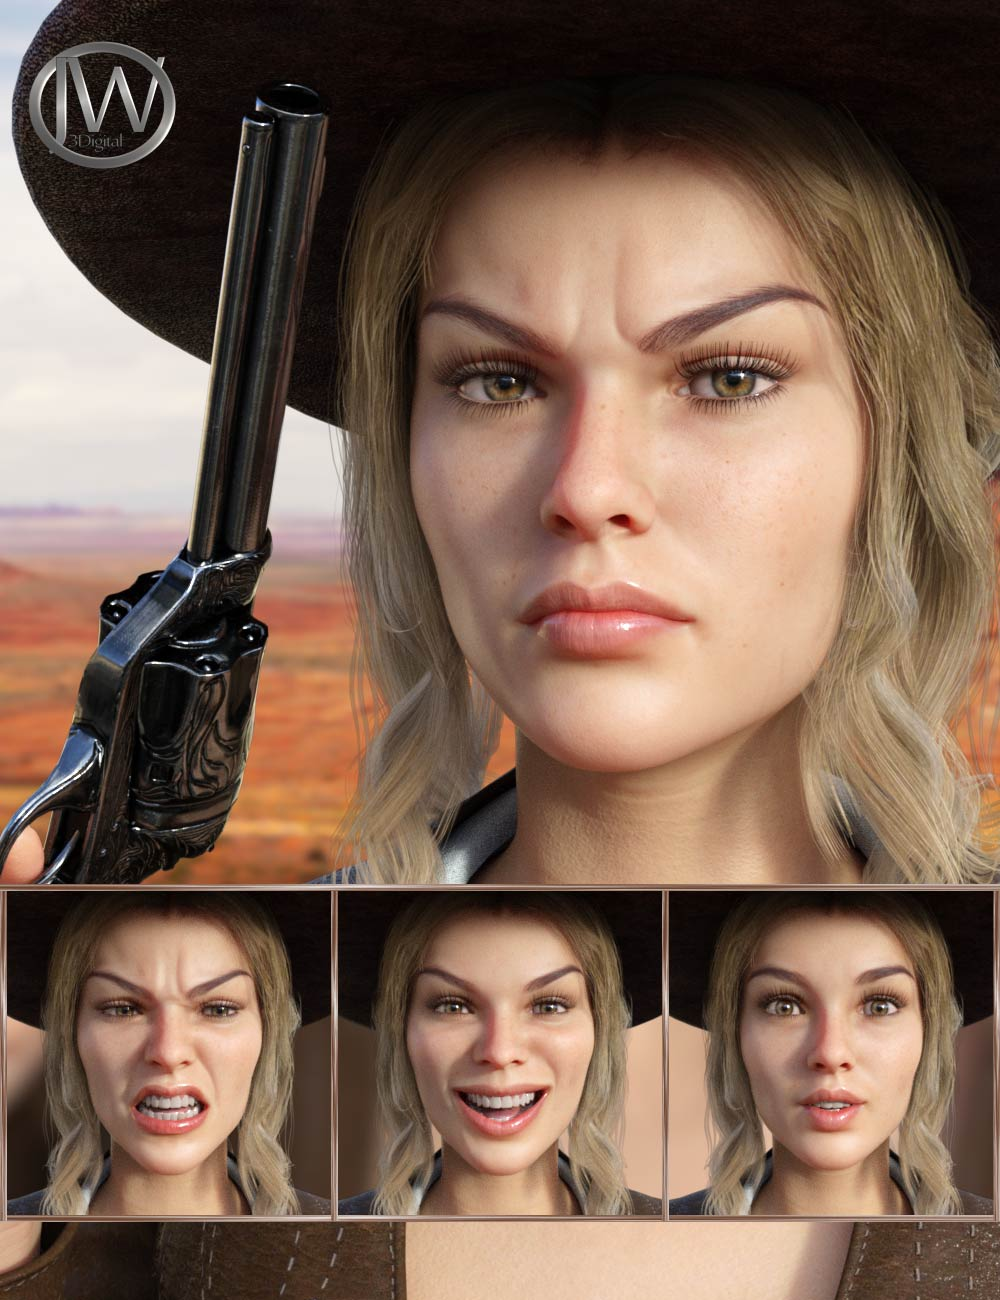 Western Girl - Expressions for Genesis 8 Female and Honni 8 by: JWolf, 3D Models by Daz 3D